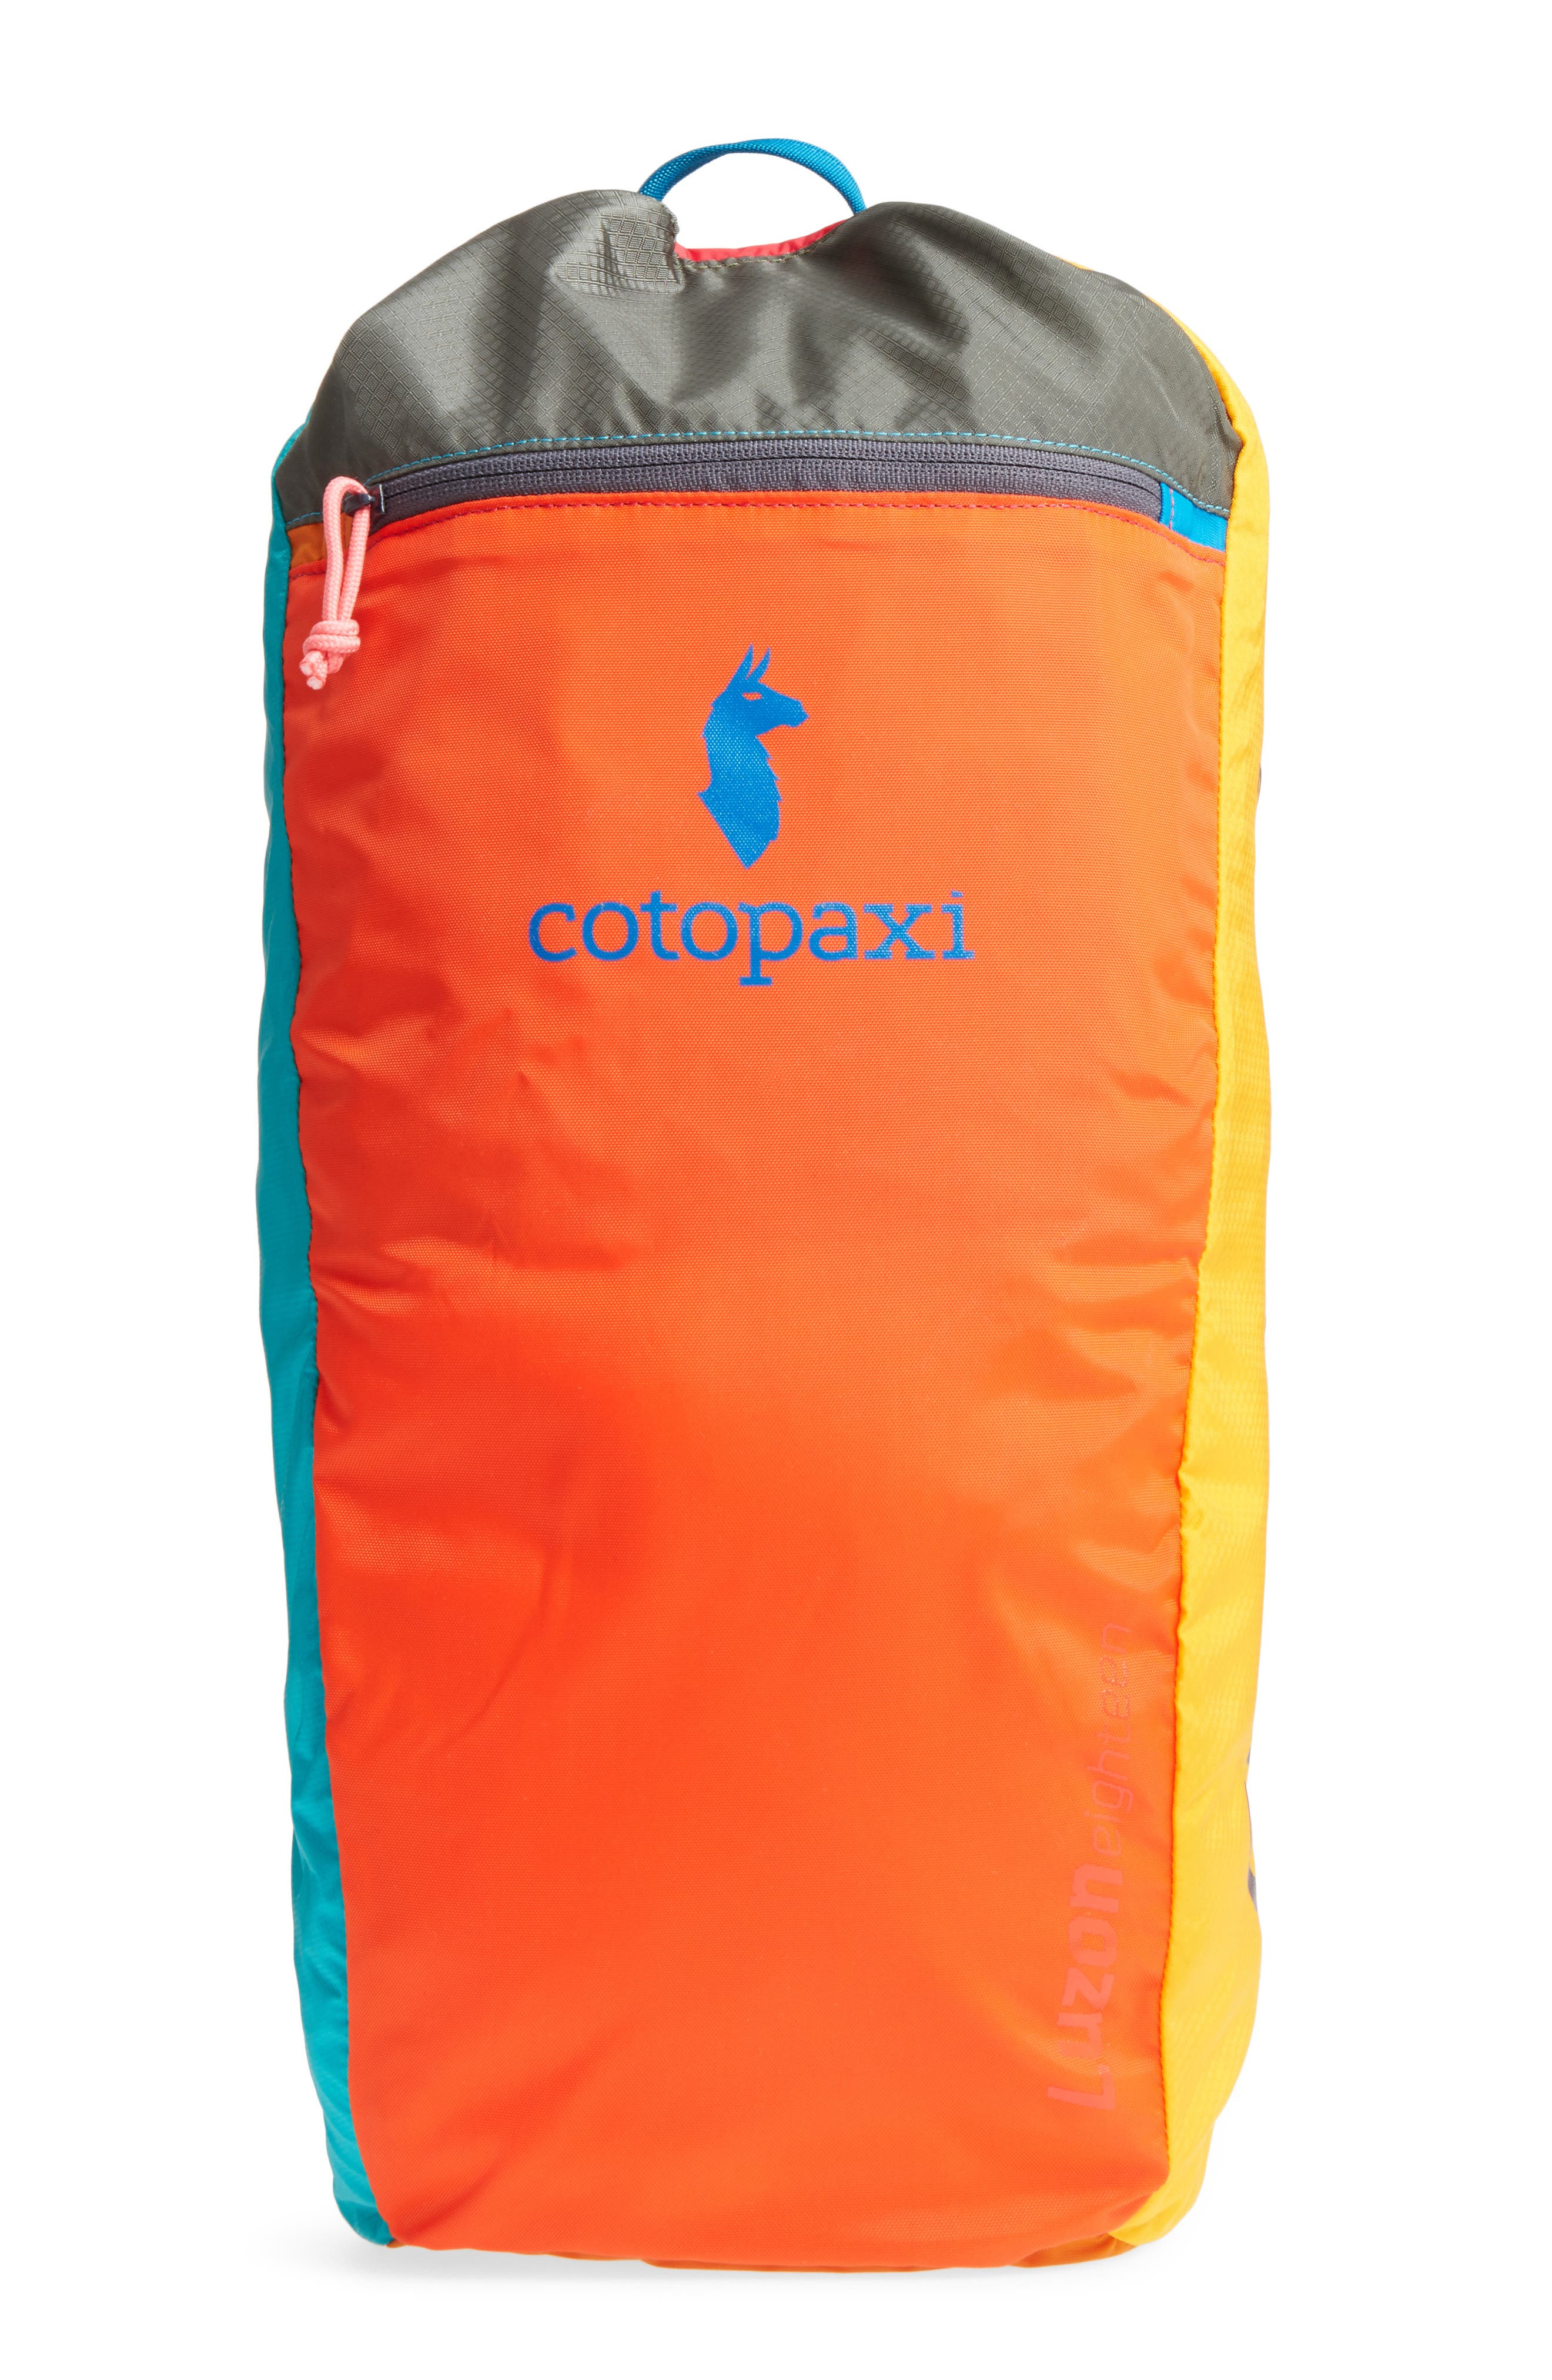 Cotopaxi Luzon Del Día One of a Kind Ripstop Nylon Daypack (18L)